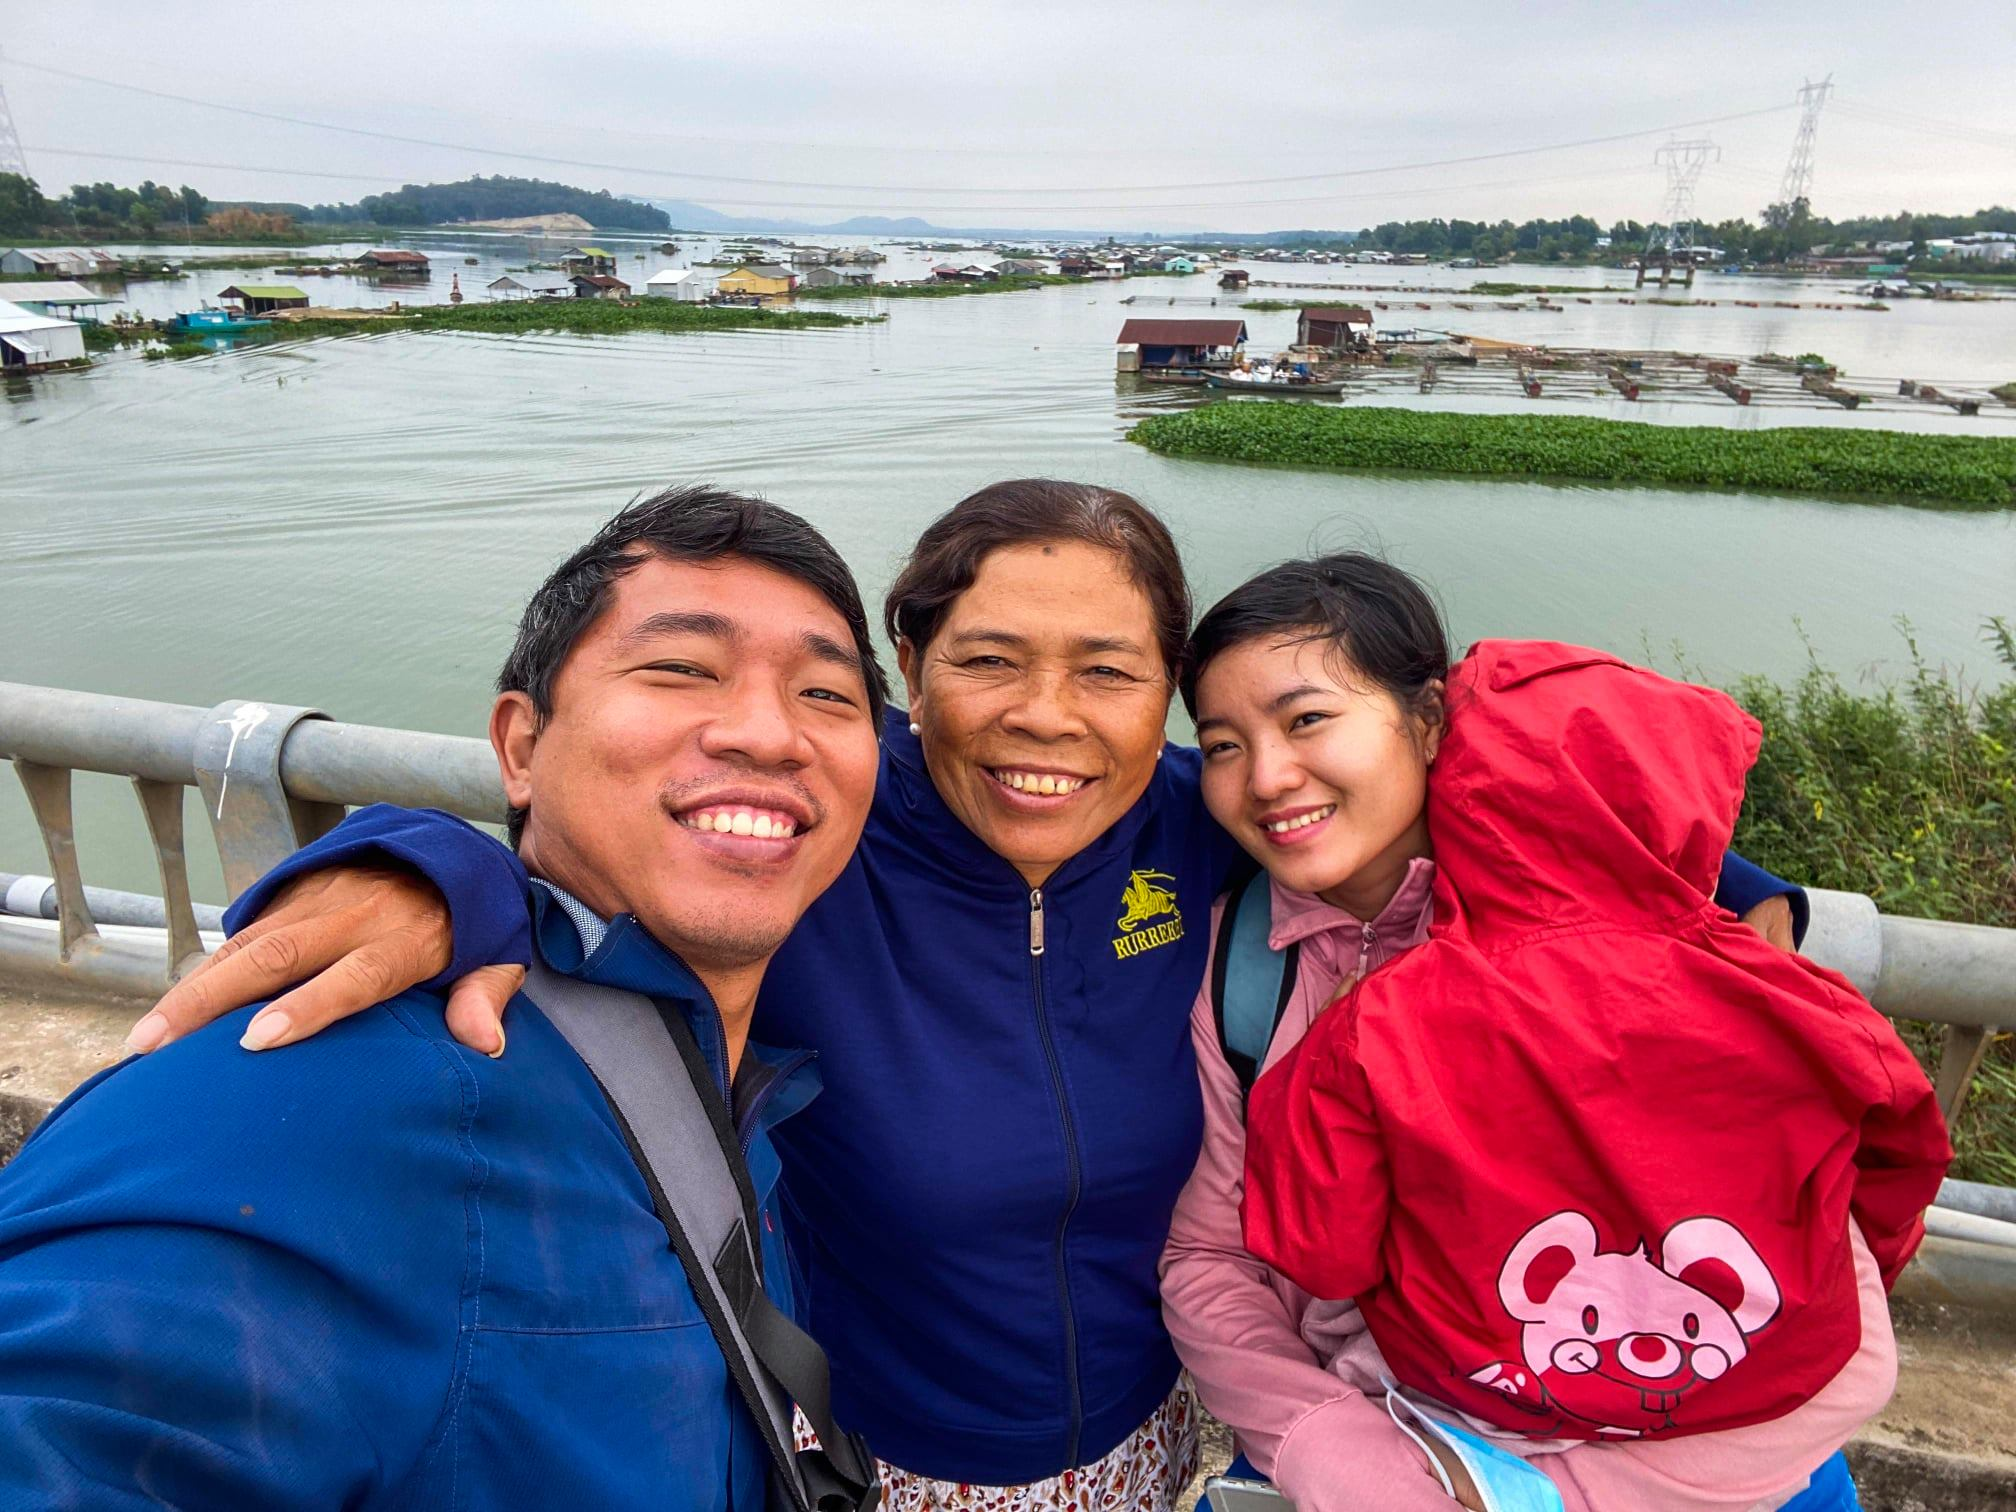 Tran Quang Dinh (left), his mother (second left), his wife and daughter stop to take a rest and pose for photo at Tri An Lake while traveling through the southern province of Dong Nai. Photo: Supplied